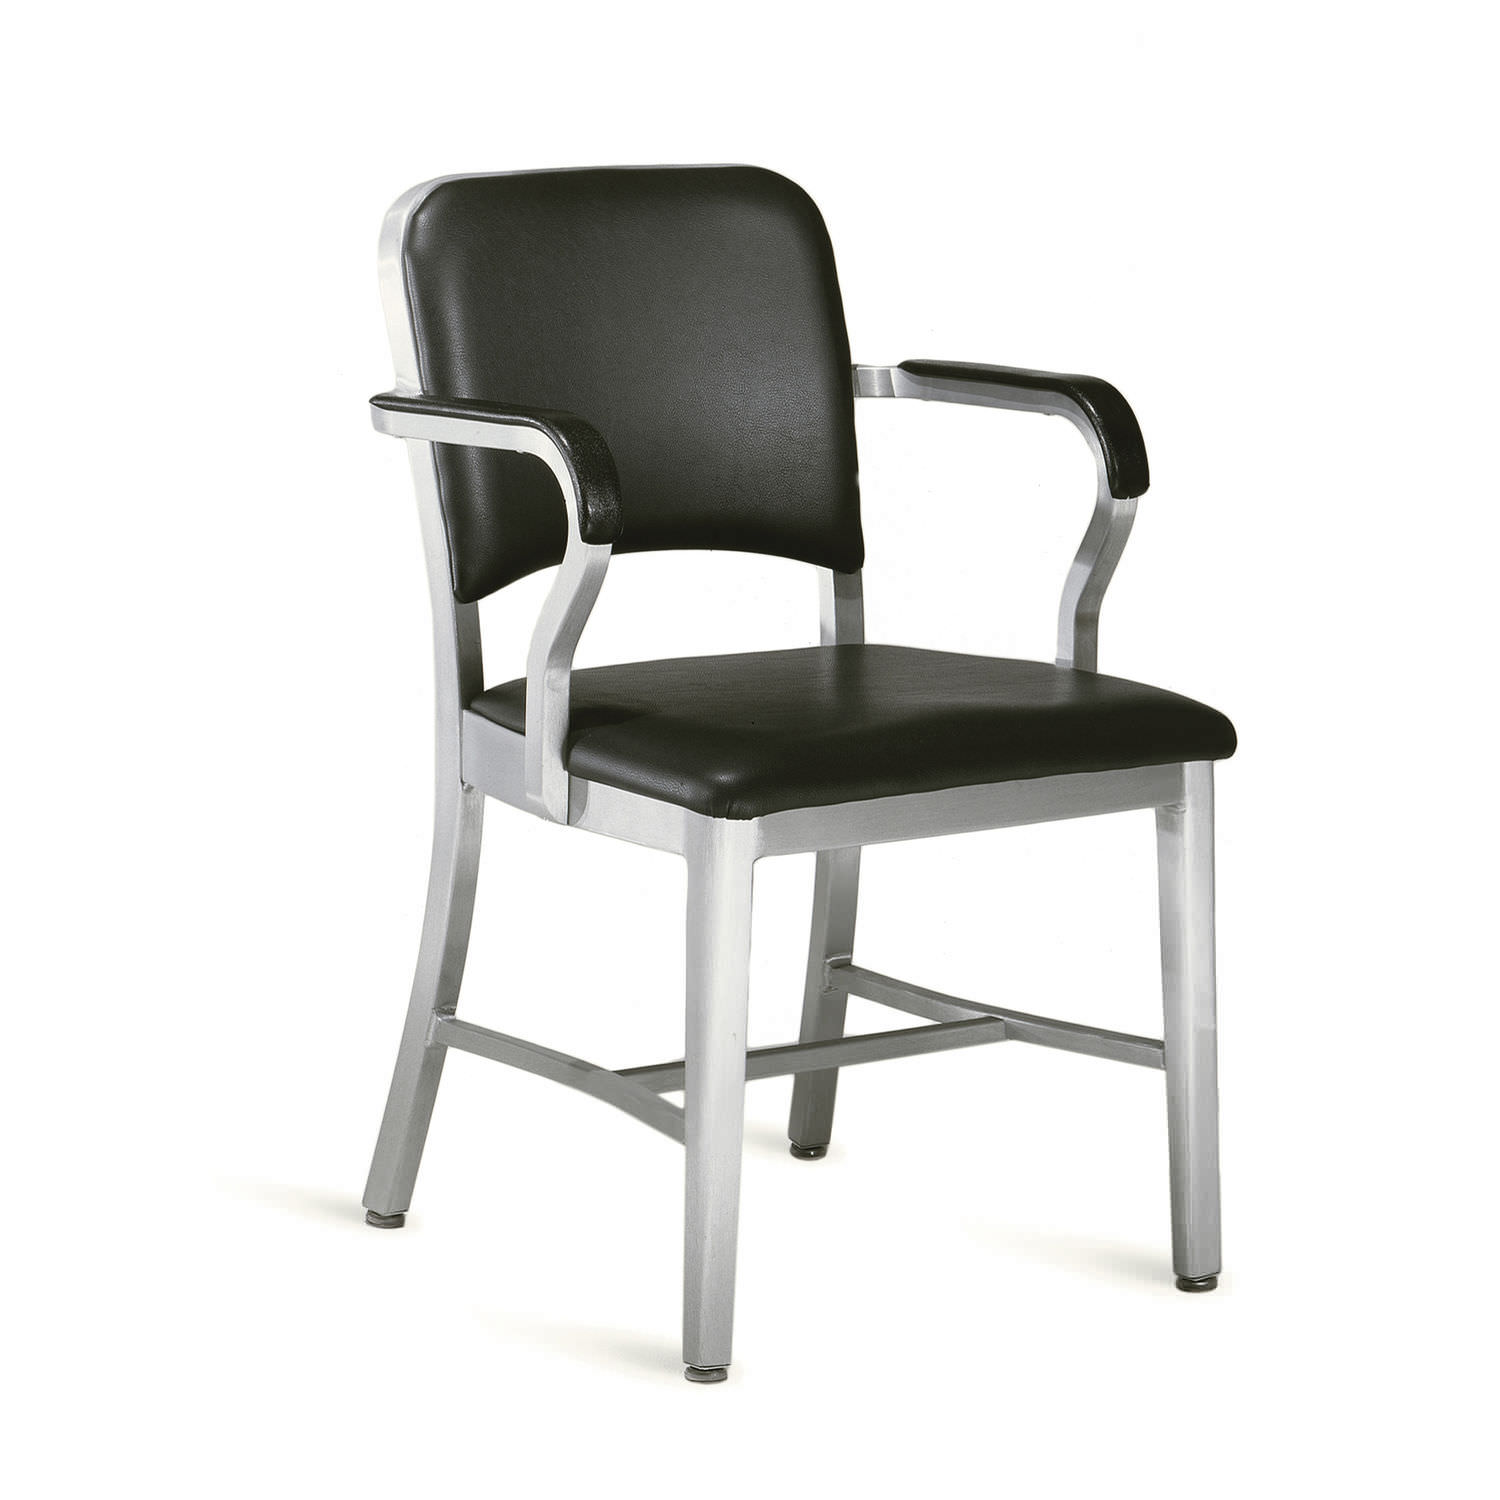 contemporary chair with armrests aluminum navy 1001 emeco